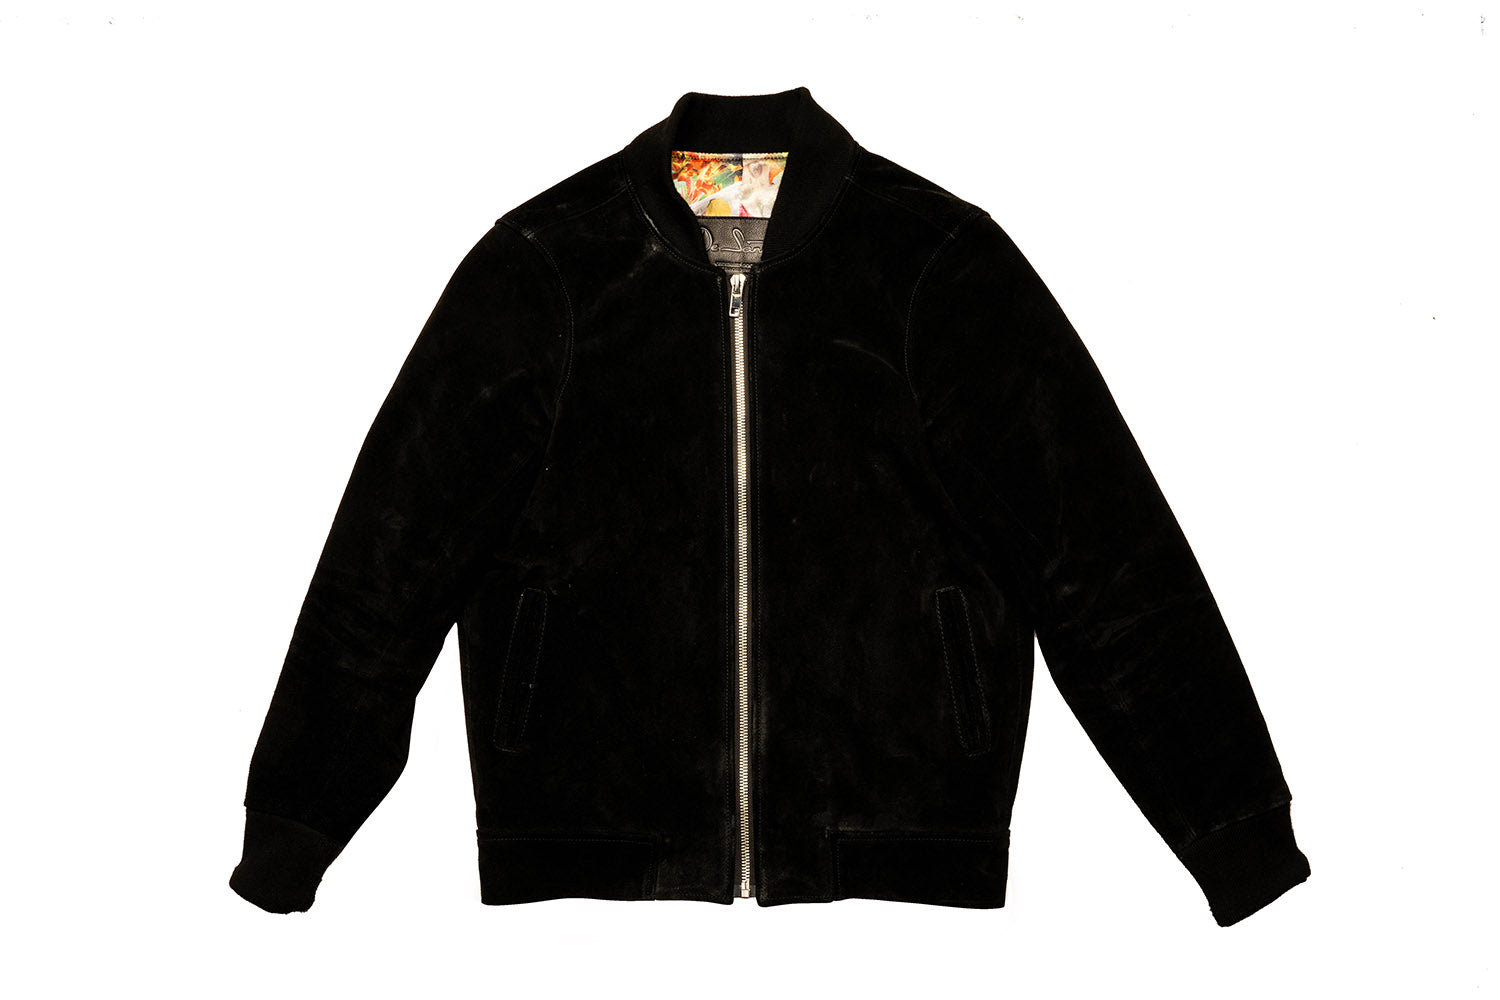 CUSTOM CABRINI BOMBER LEATHER JACKET